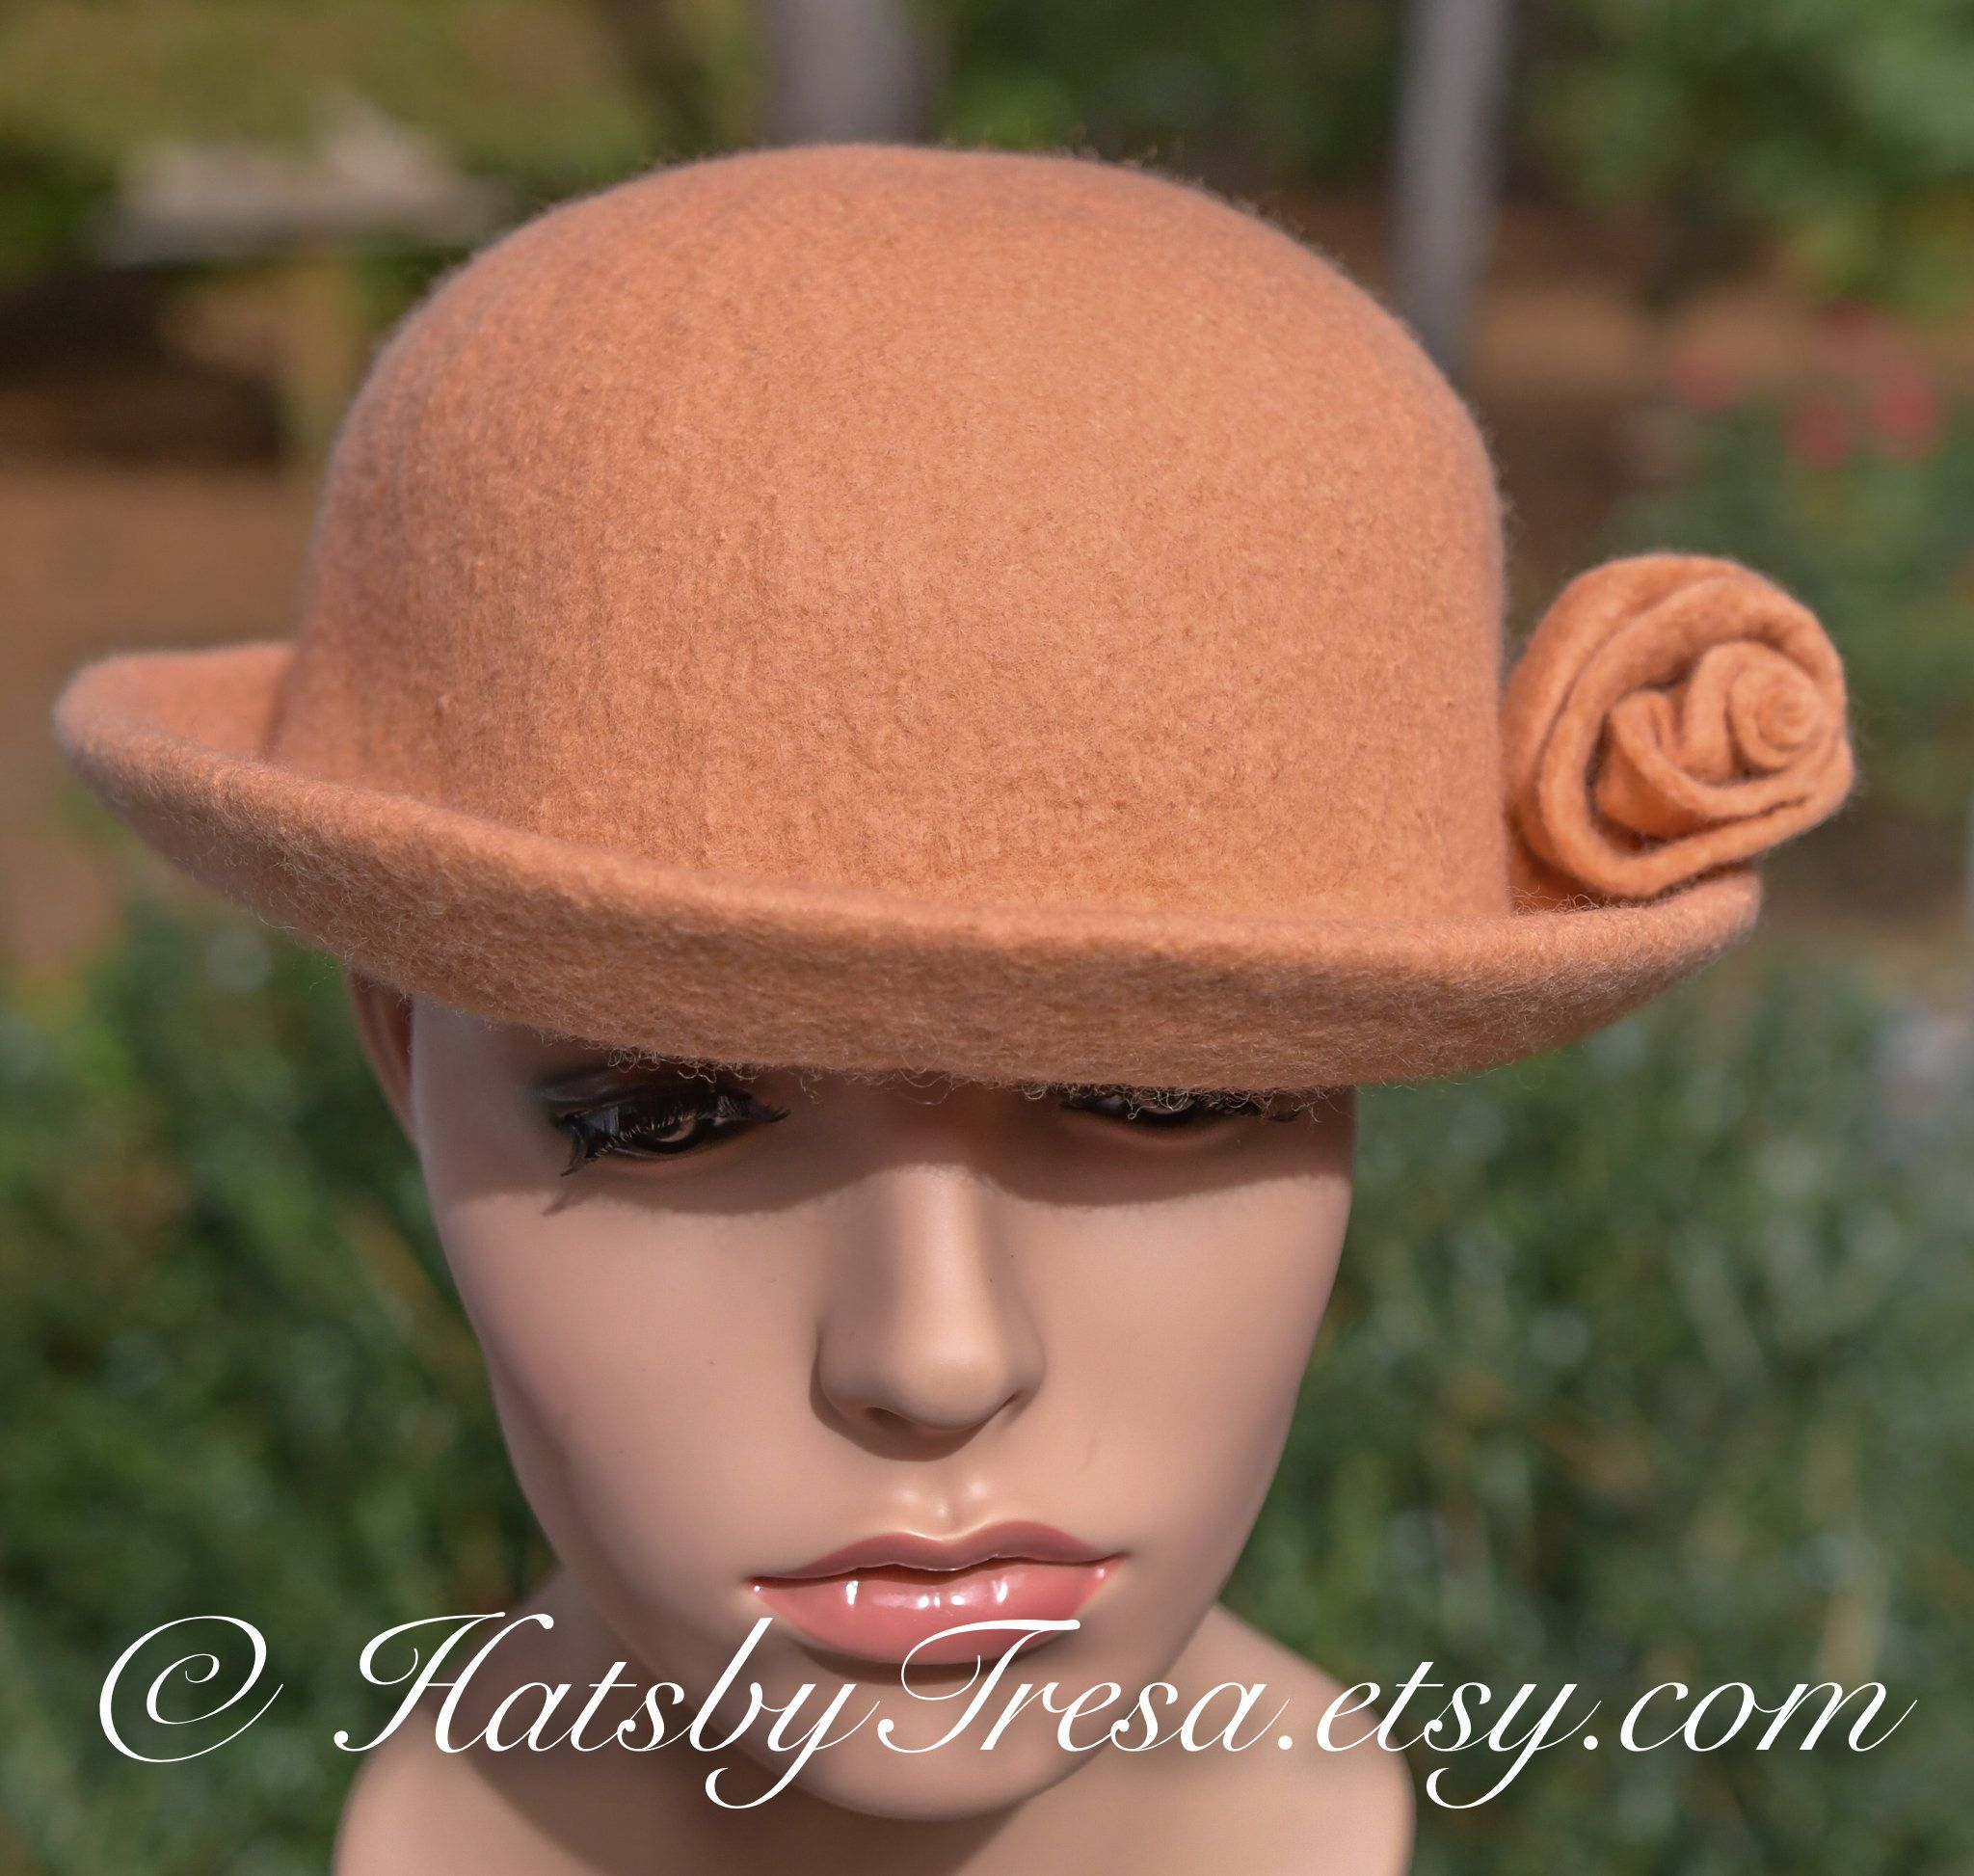 4c4b77204e5 Cantaloupe Bowler Hat by HatsbyTresa on Etsy